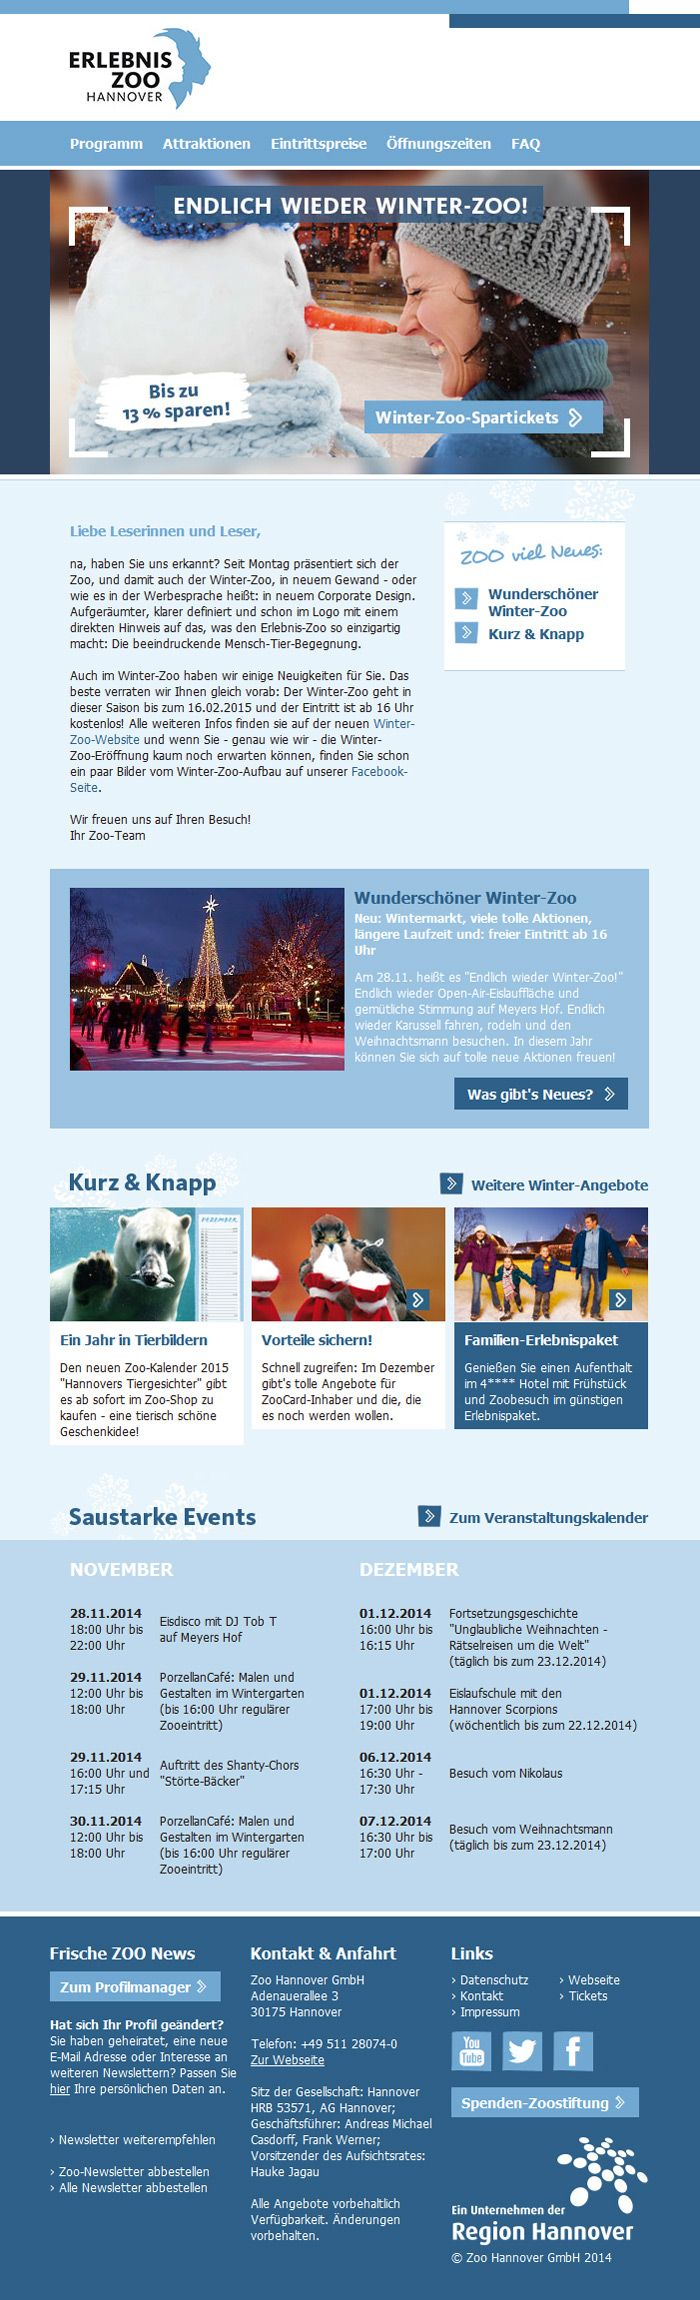 Der Zoo Hannover mit einem #Newsletter-Redesign made by mailingwork. #Newsletterdesign #Email #Emailmarketing